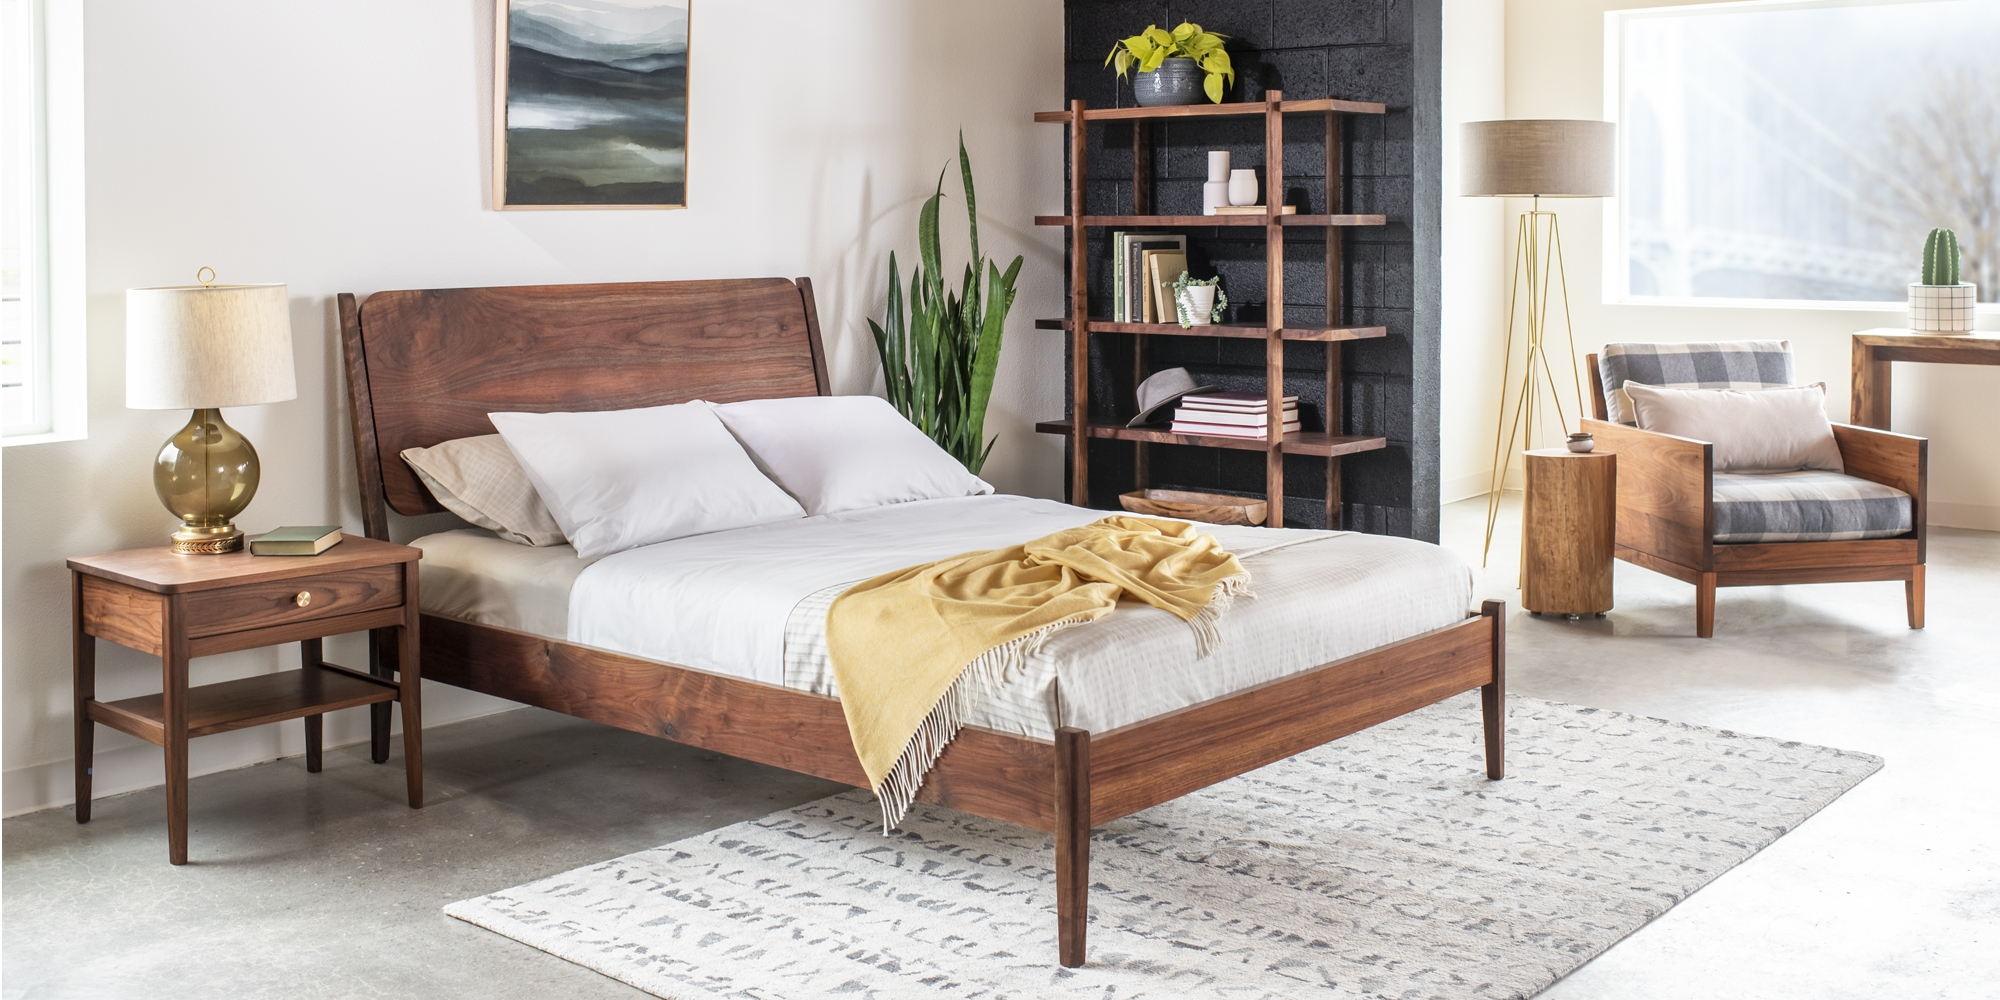 Whitman Bedroom vignette by The Joinery